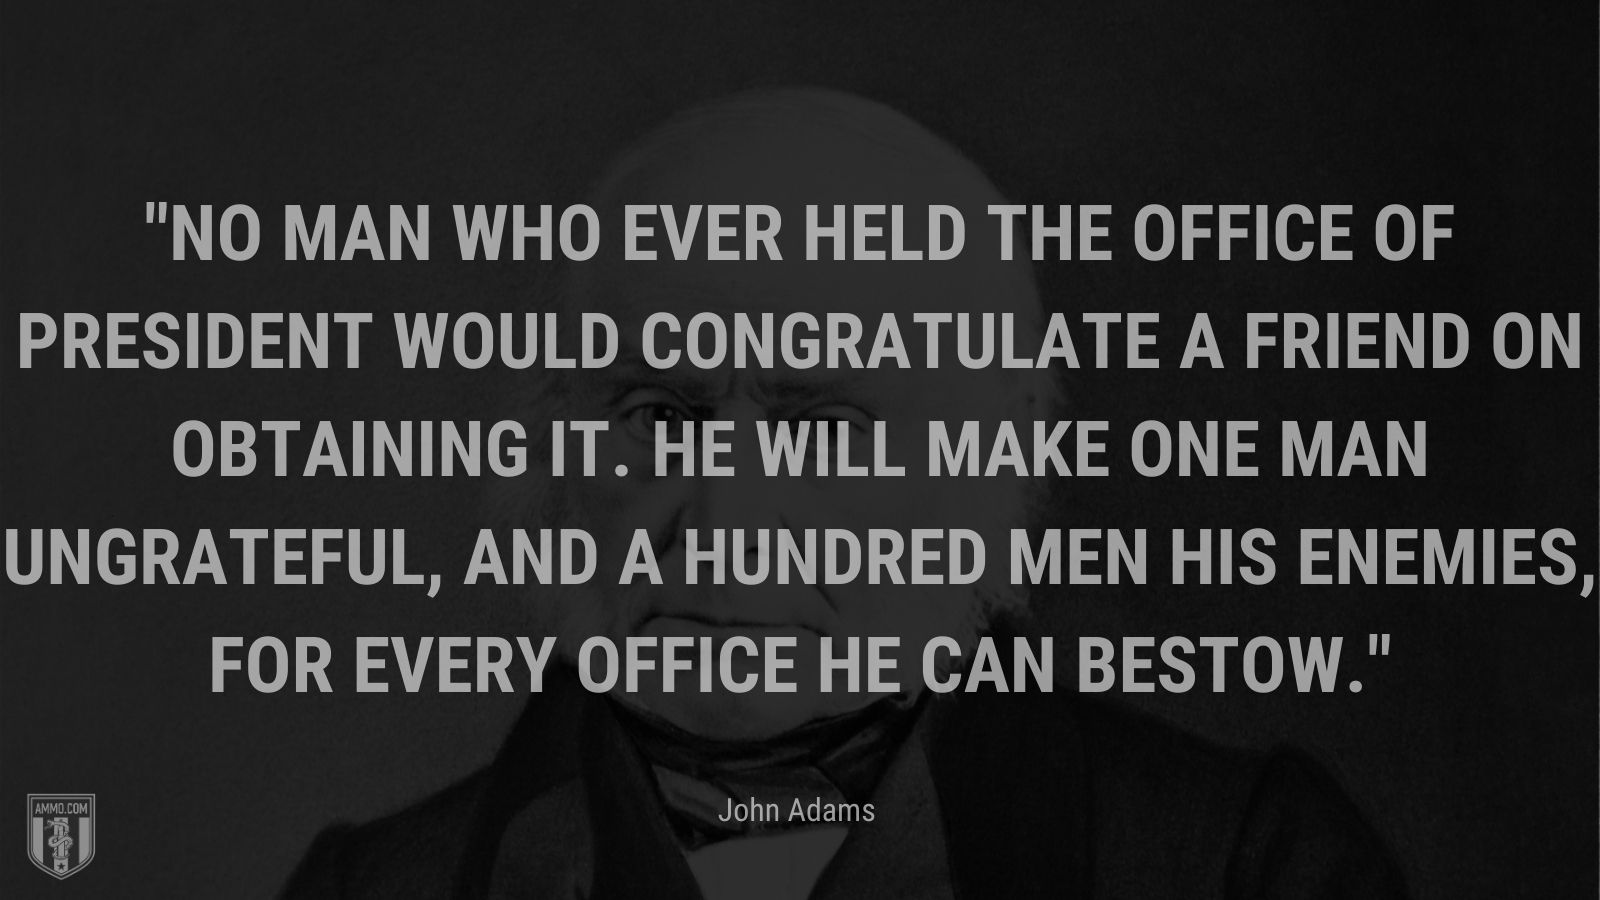 """""""No man who ever held the office of President would congratulate a friend on obtaining it. He will make one man ungrateful, and a hundred men his enemies, for every office he can bestow."""" - John Adams"""